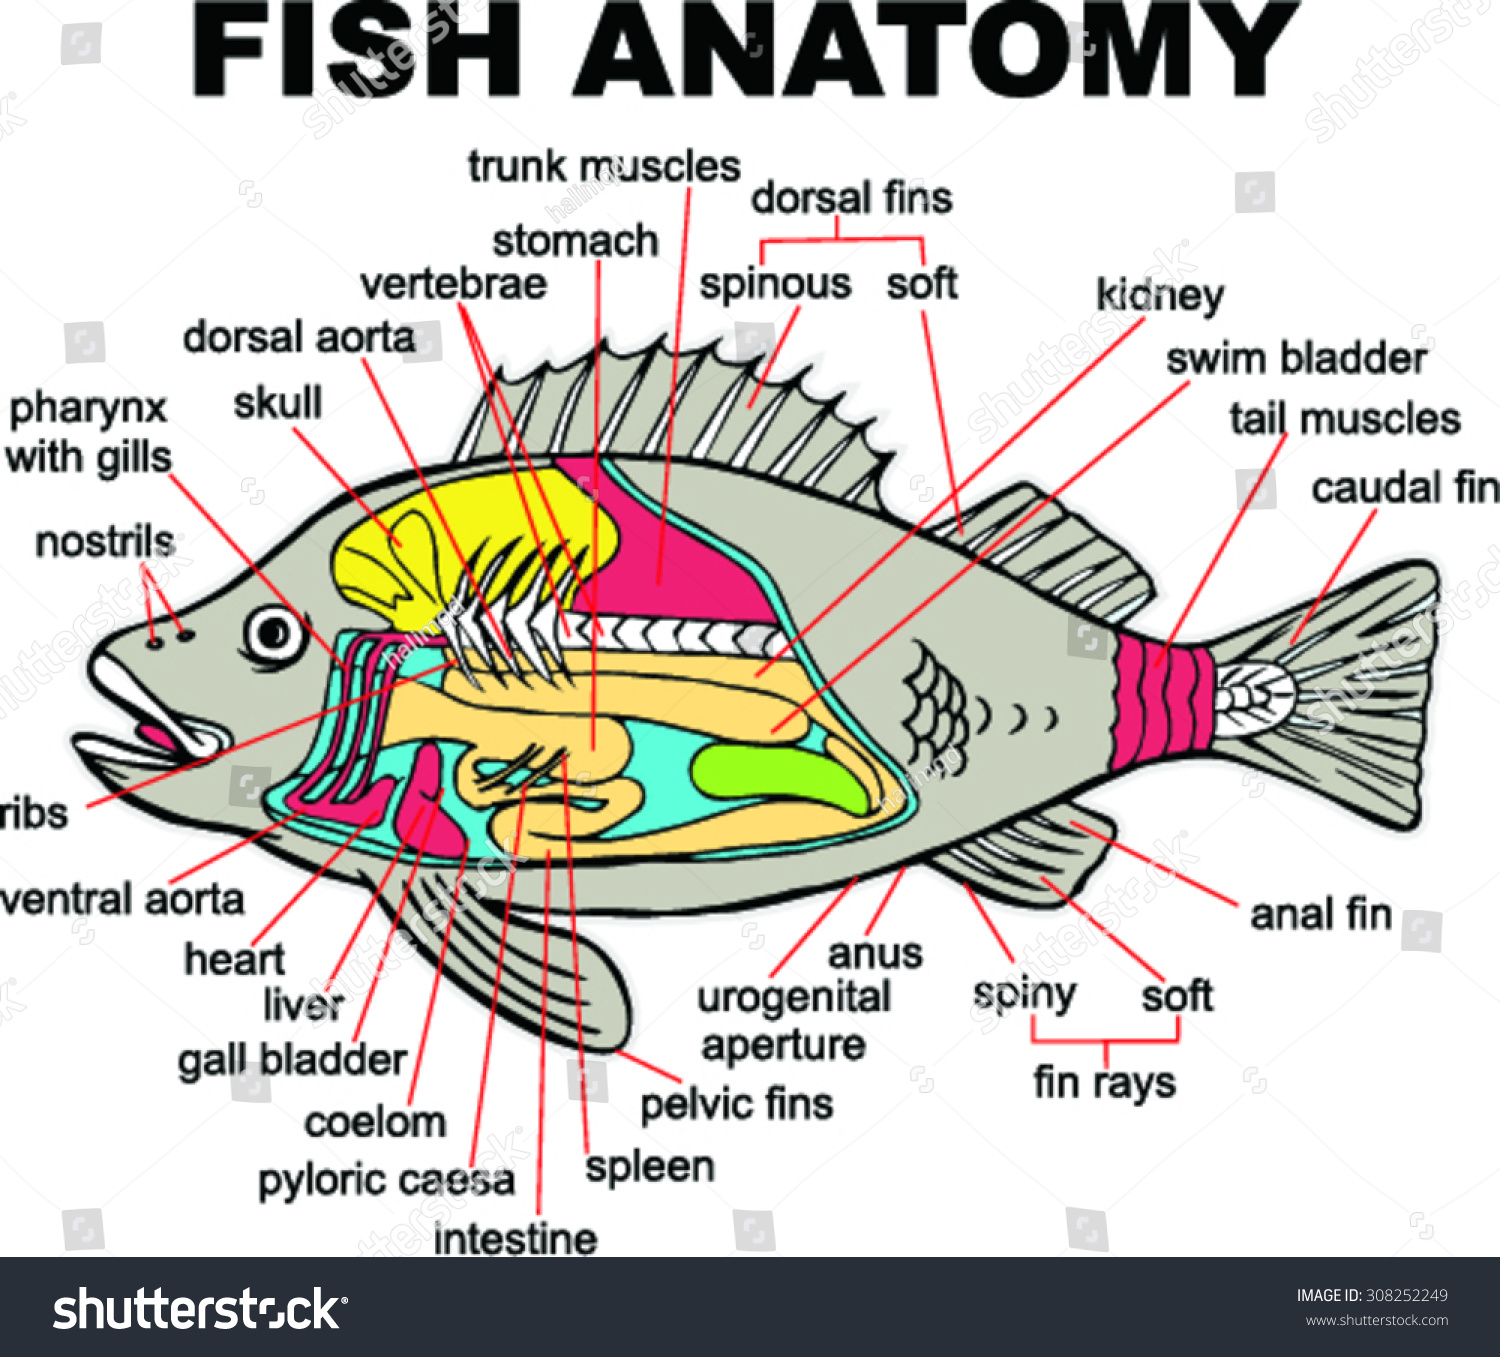 Fish Anatomy Vector Illustration Stock Vector (Royalty Free ...